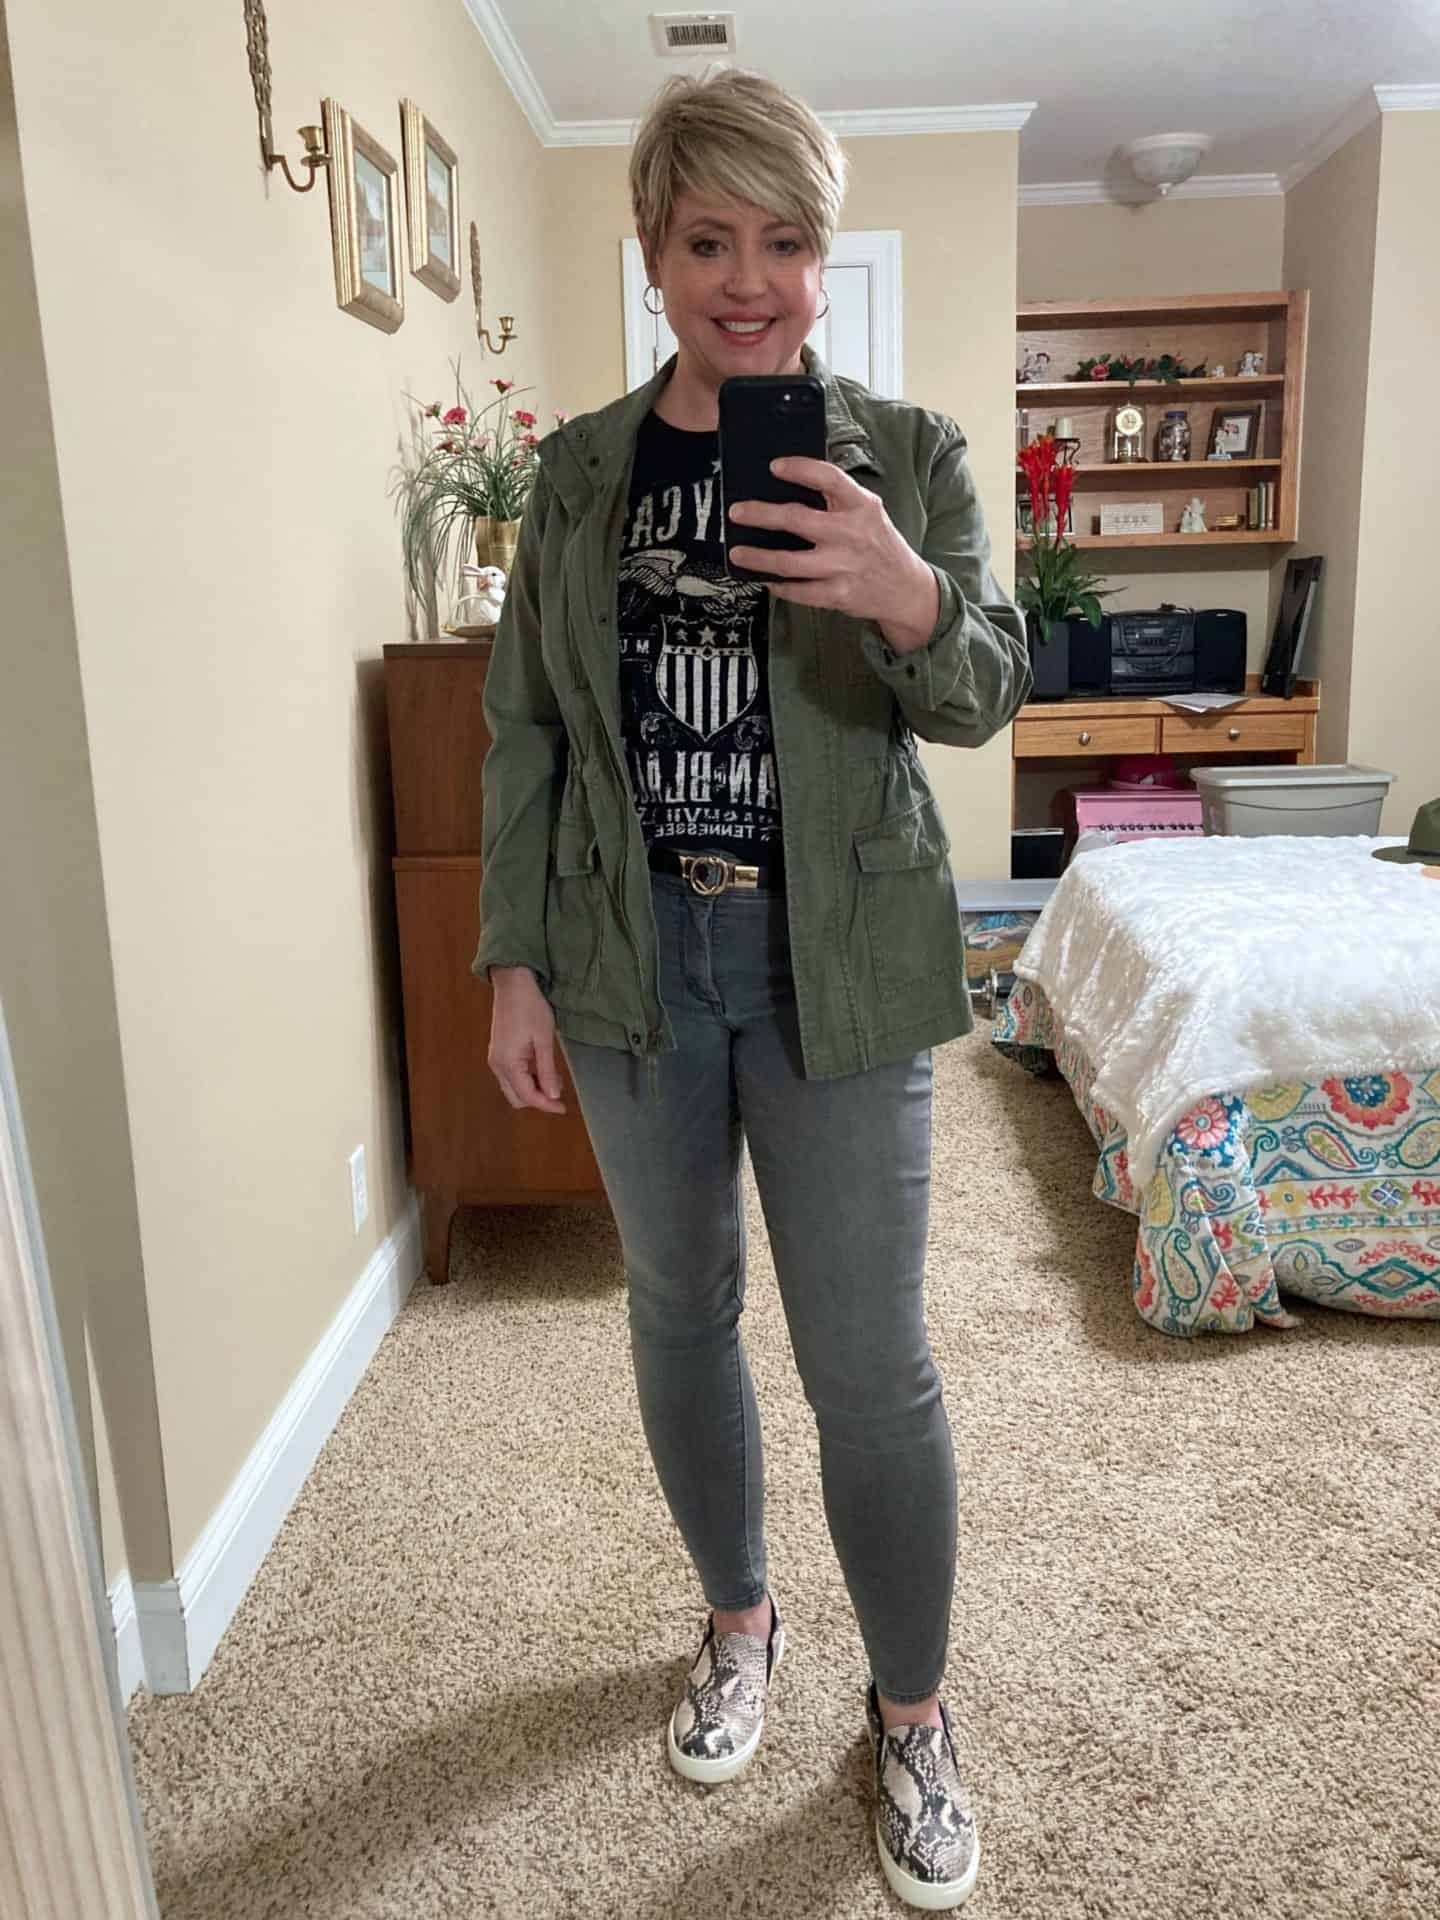 casual fall outfit with utility jacket and graphic tee, outfits for errands and casual outings